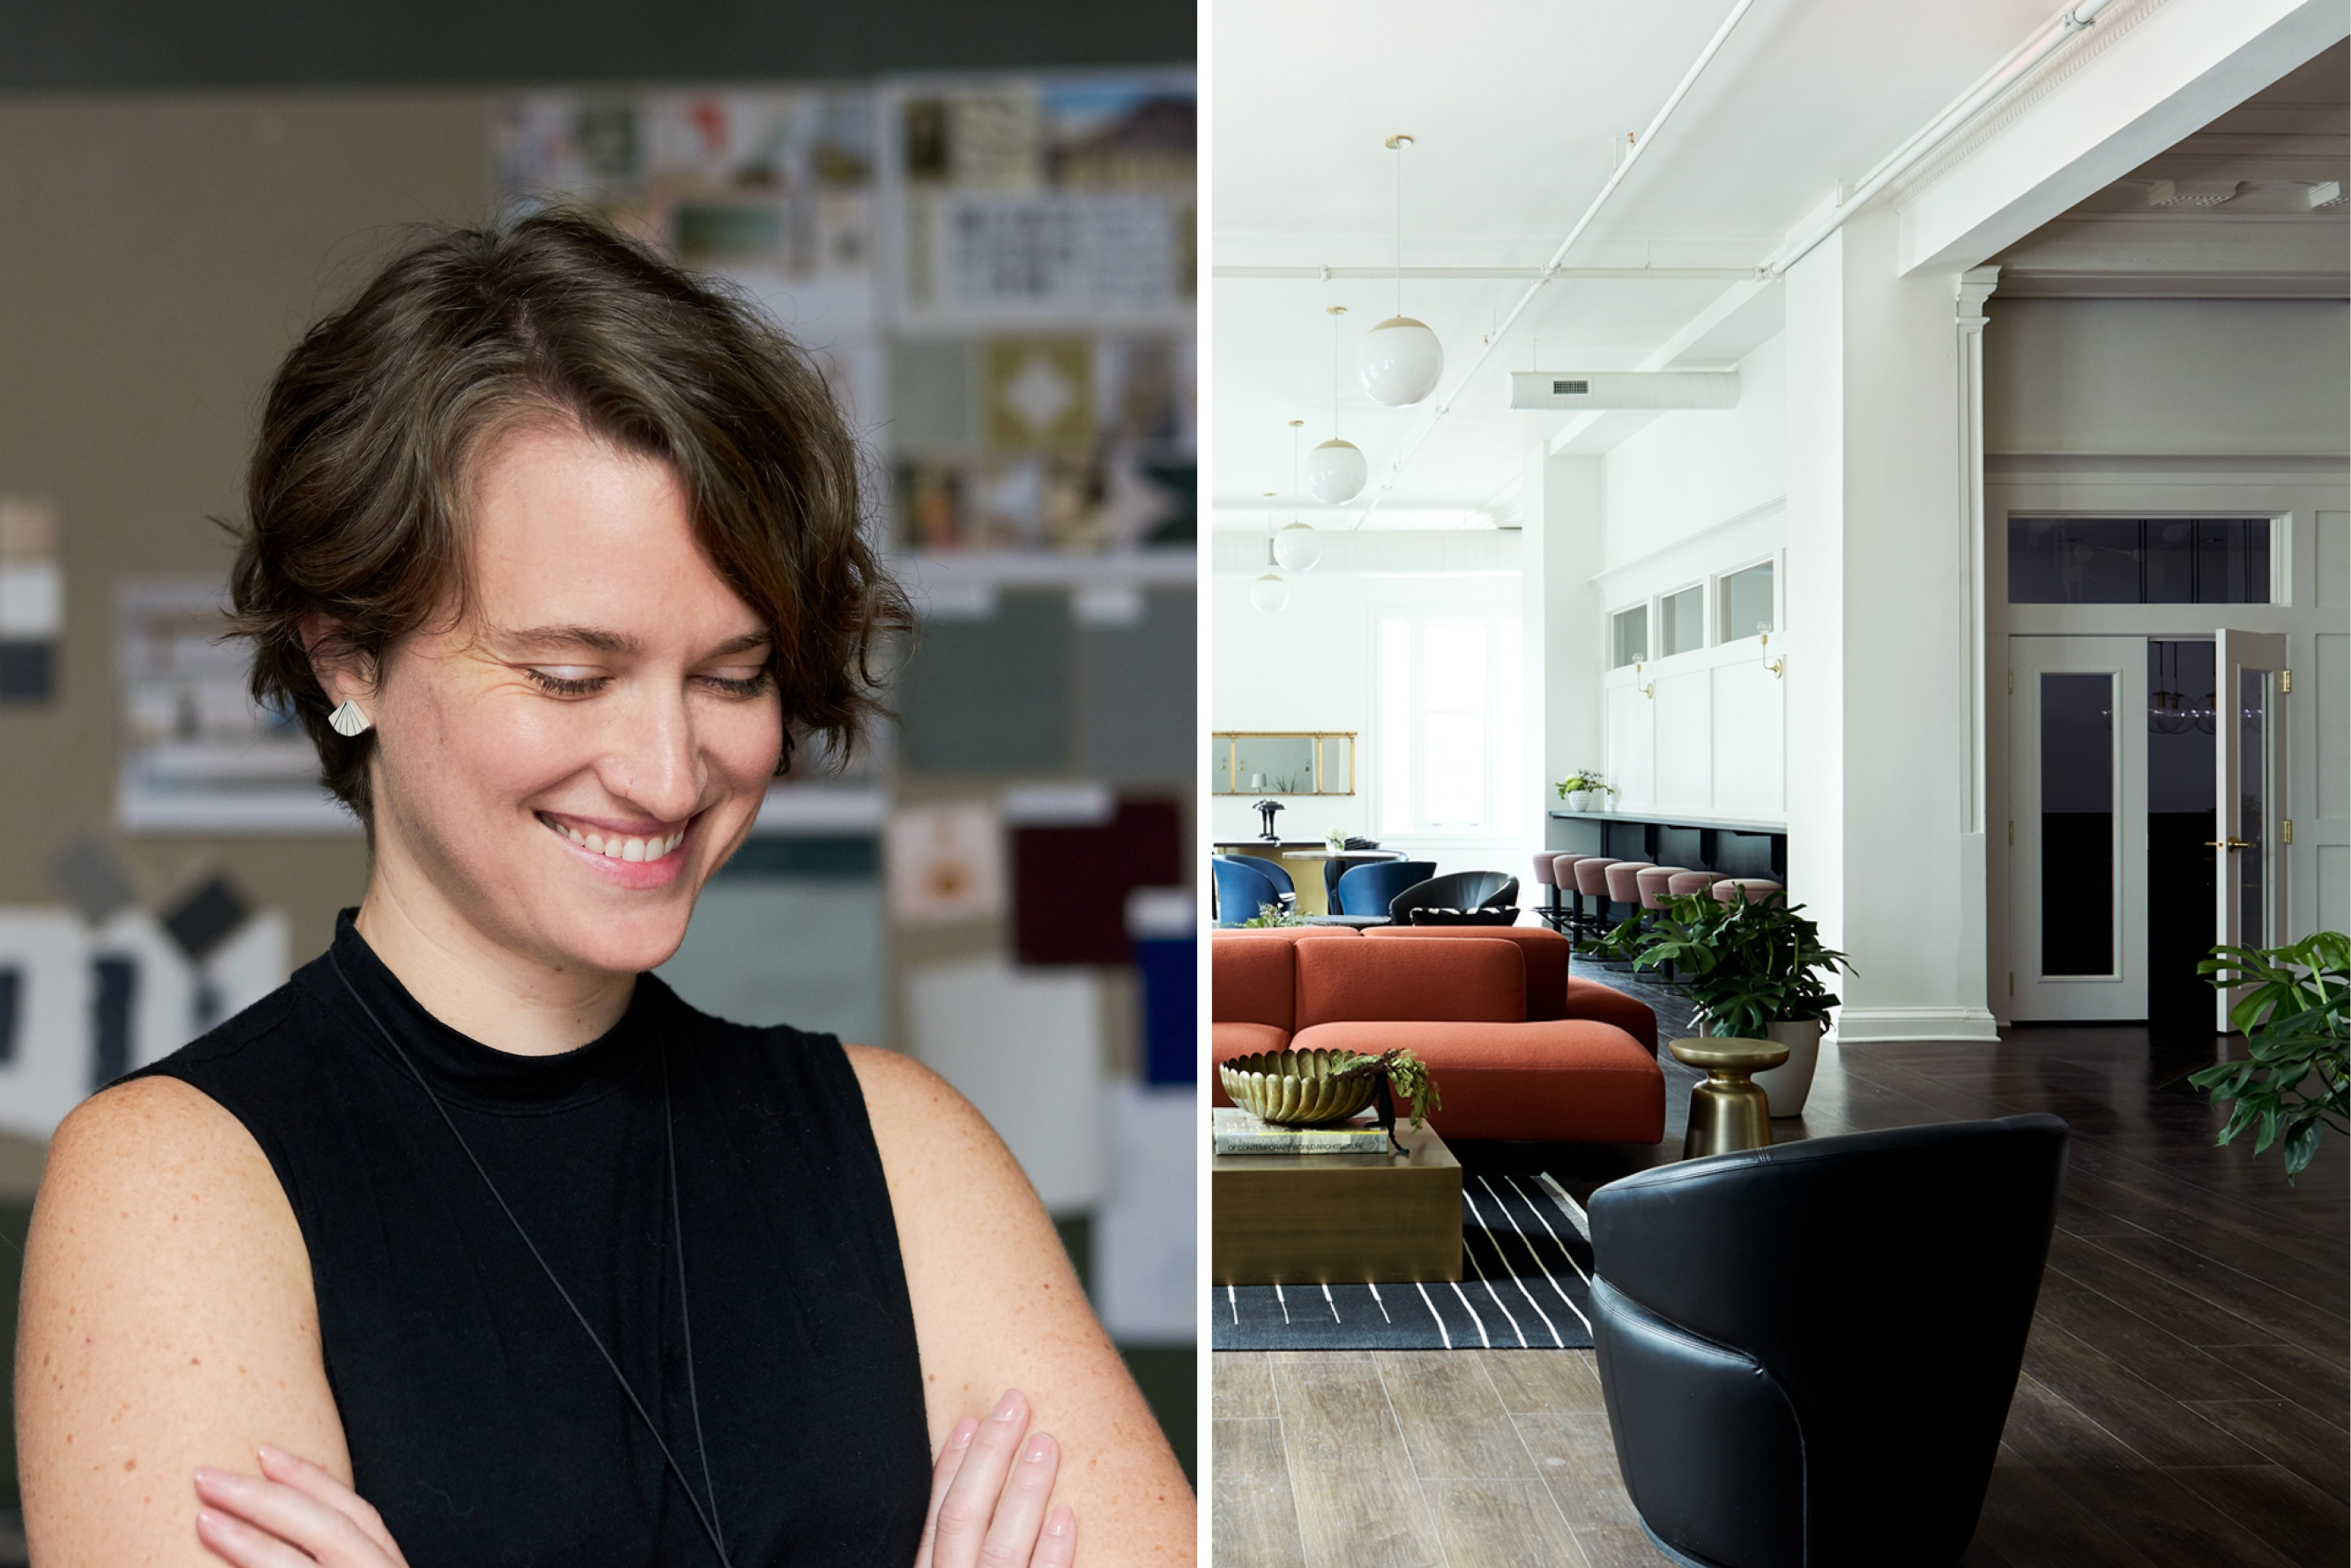 Beauty Shoppe and Coworking Space with Morgan Stewart interview